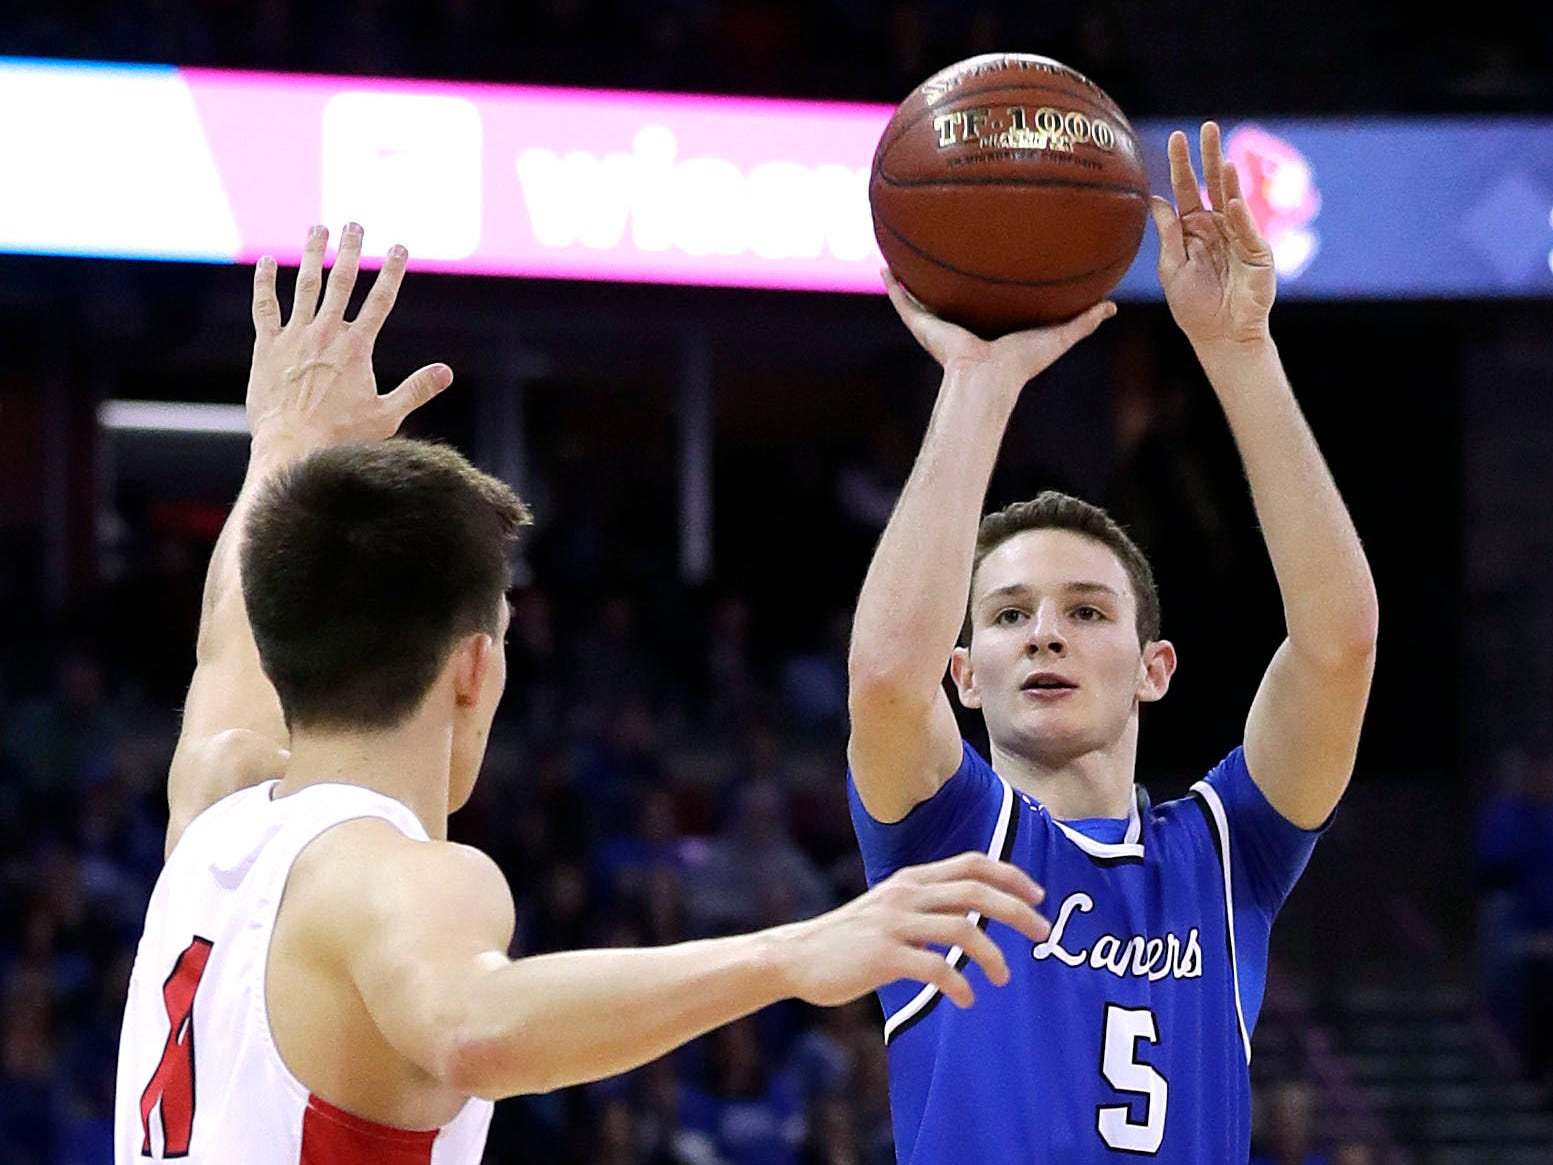 Brookfield Central's Cole Nau puts up a three-pointer against Sun Prairie during the  Division 1 championship game Saturday.